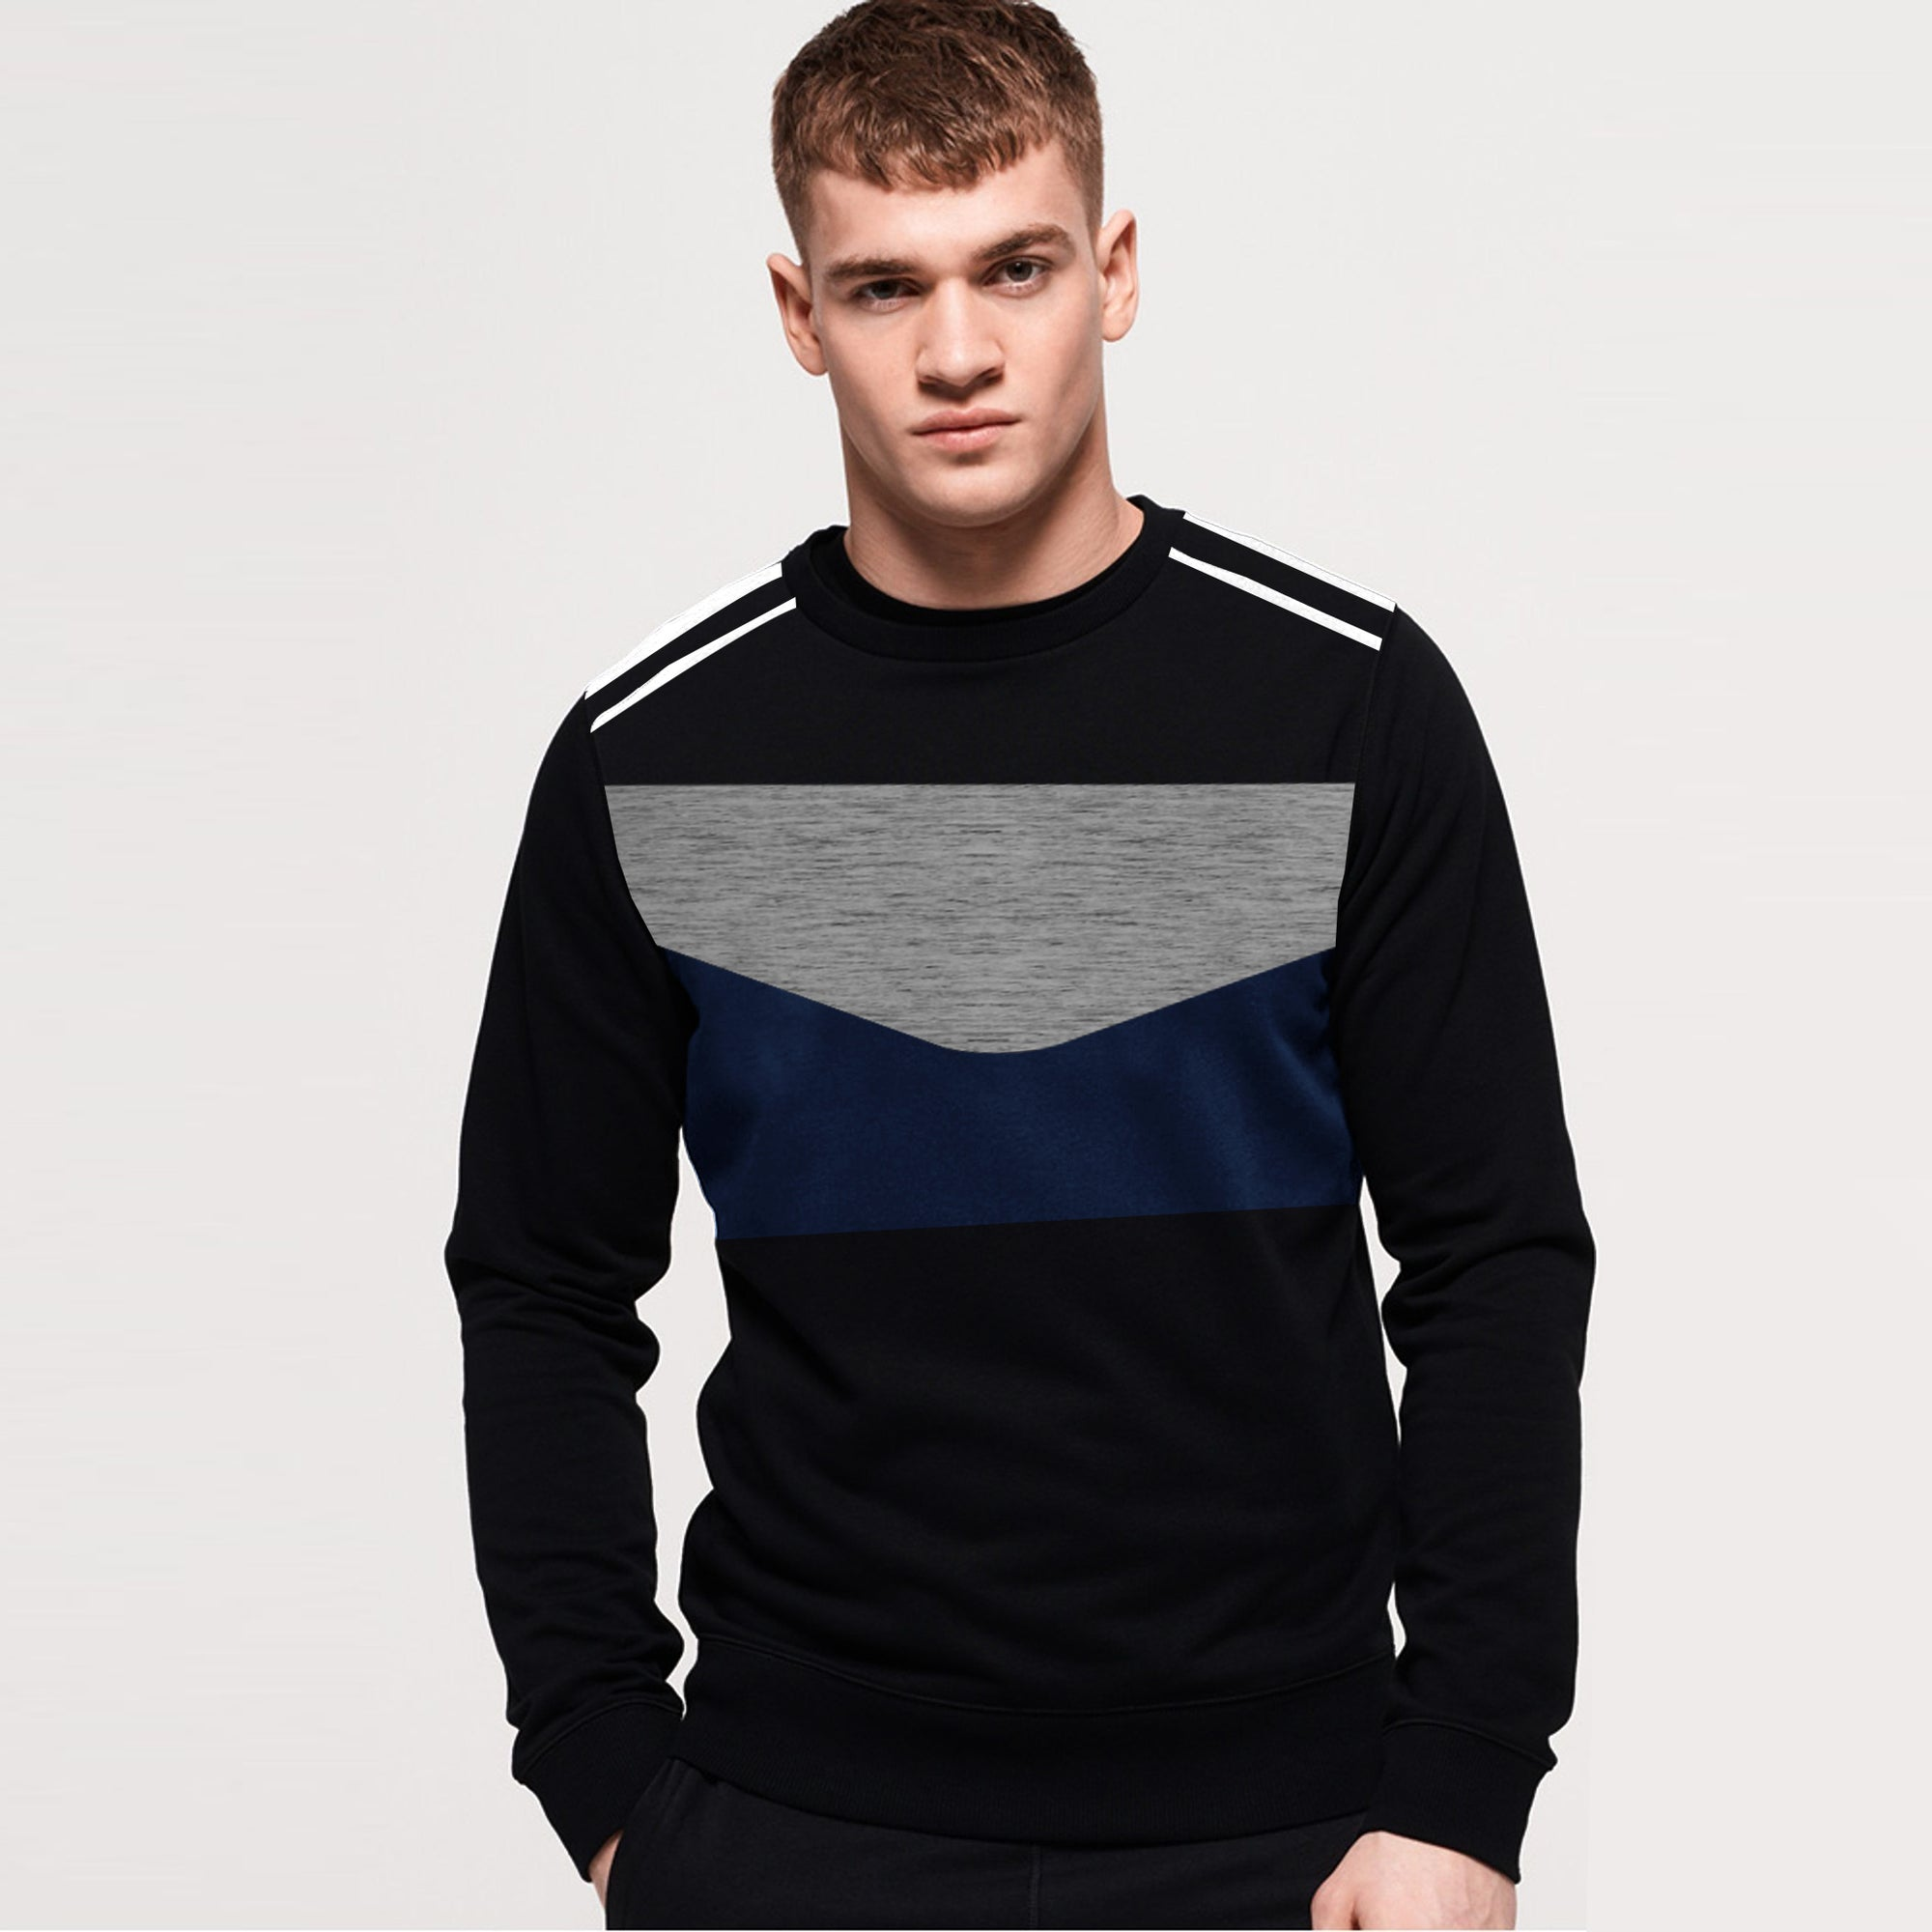 Next Fleece Crew Neck Sweatshirt For Men-Black & Multi Panel-SP1059